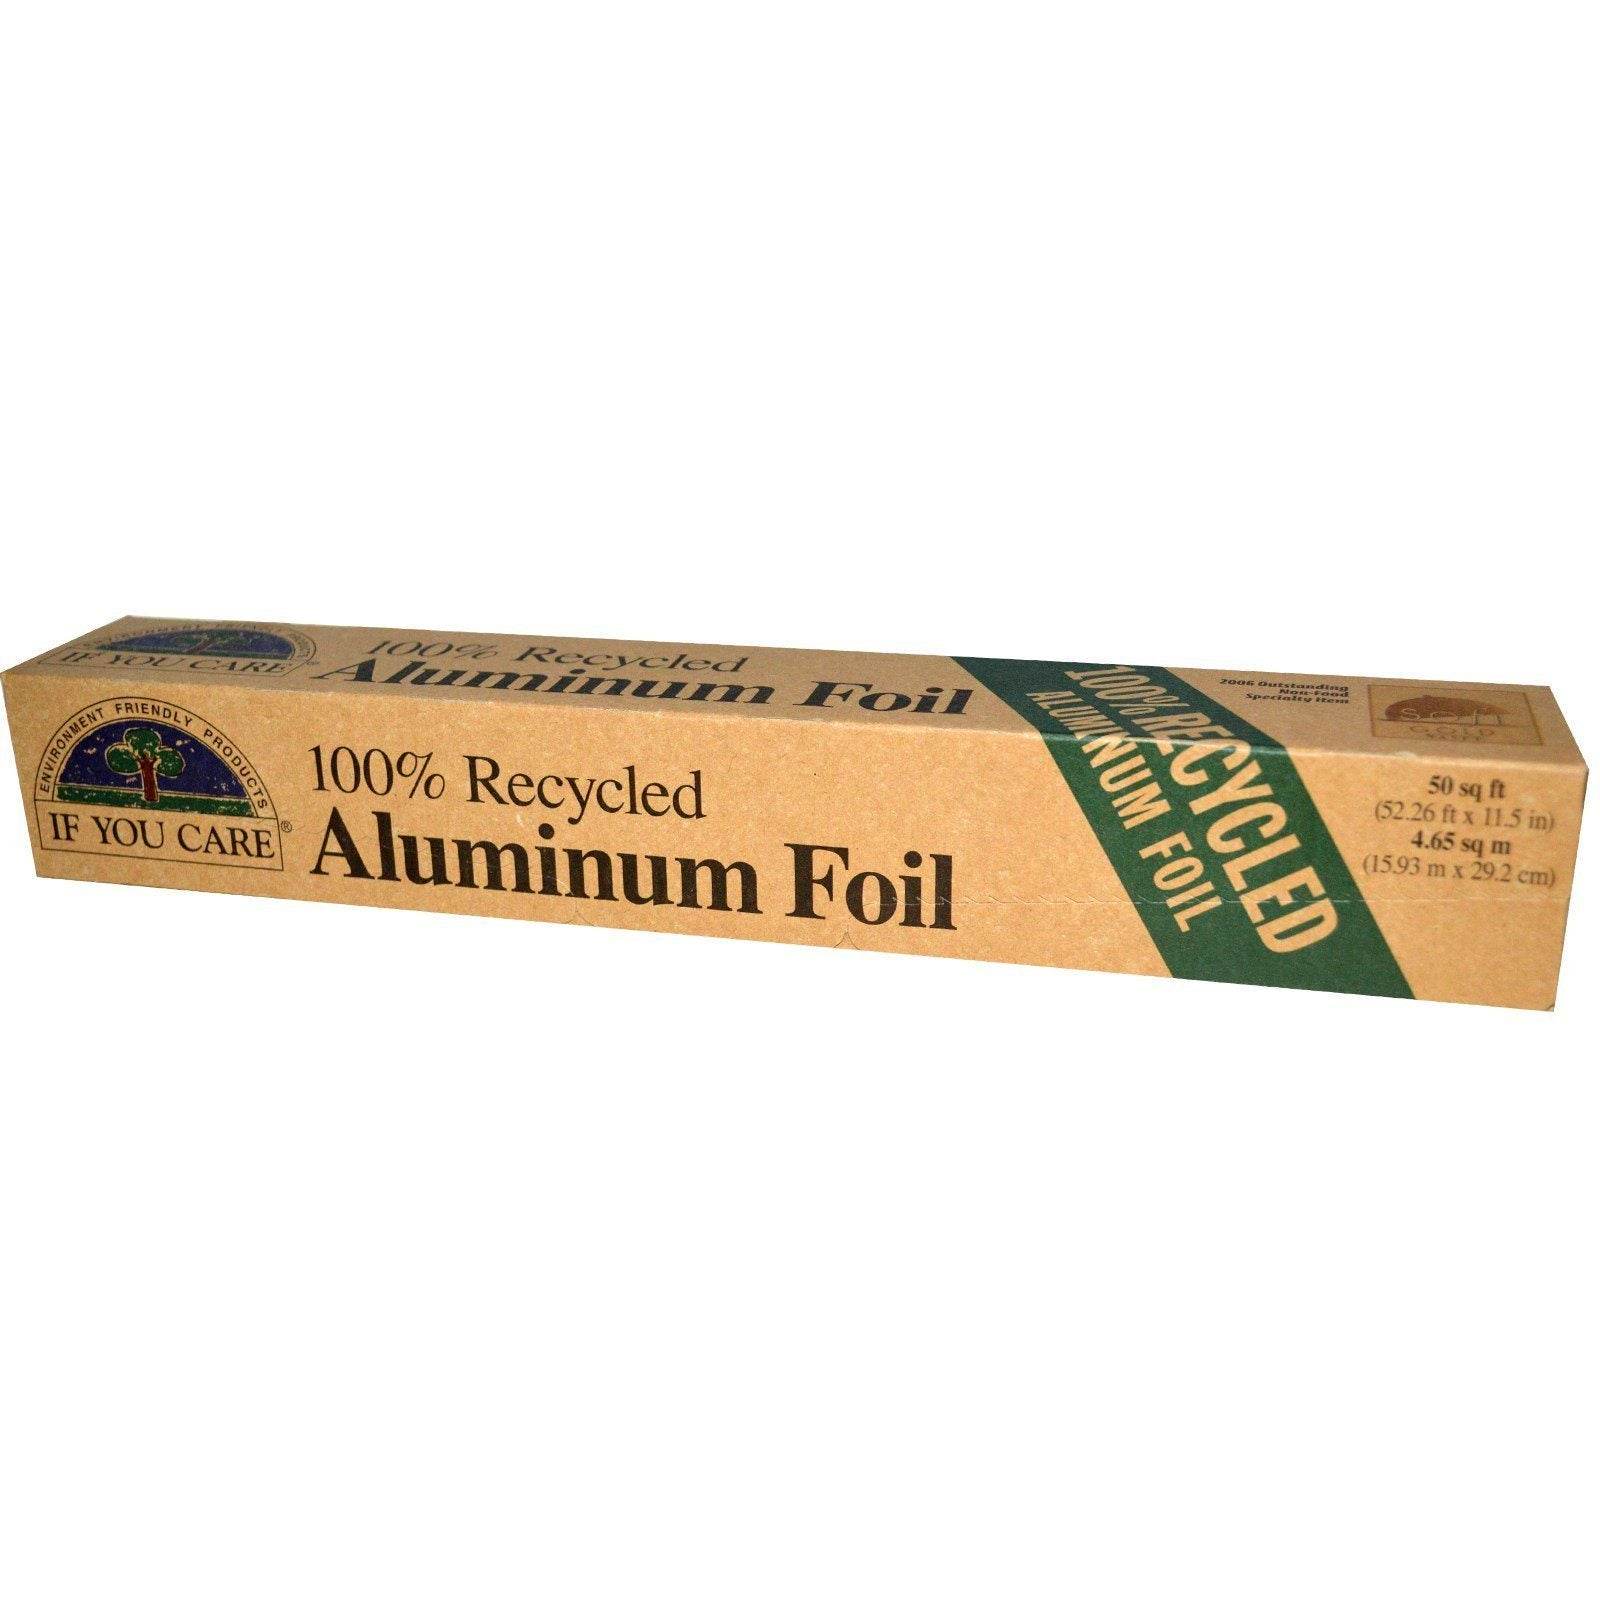 Healthy Lifestyles - If You Care - Enviro Friendly - 100% Recycled Aluminum Foil, 50 Sq. Feet